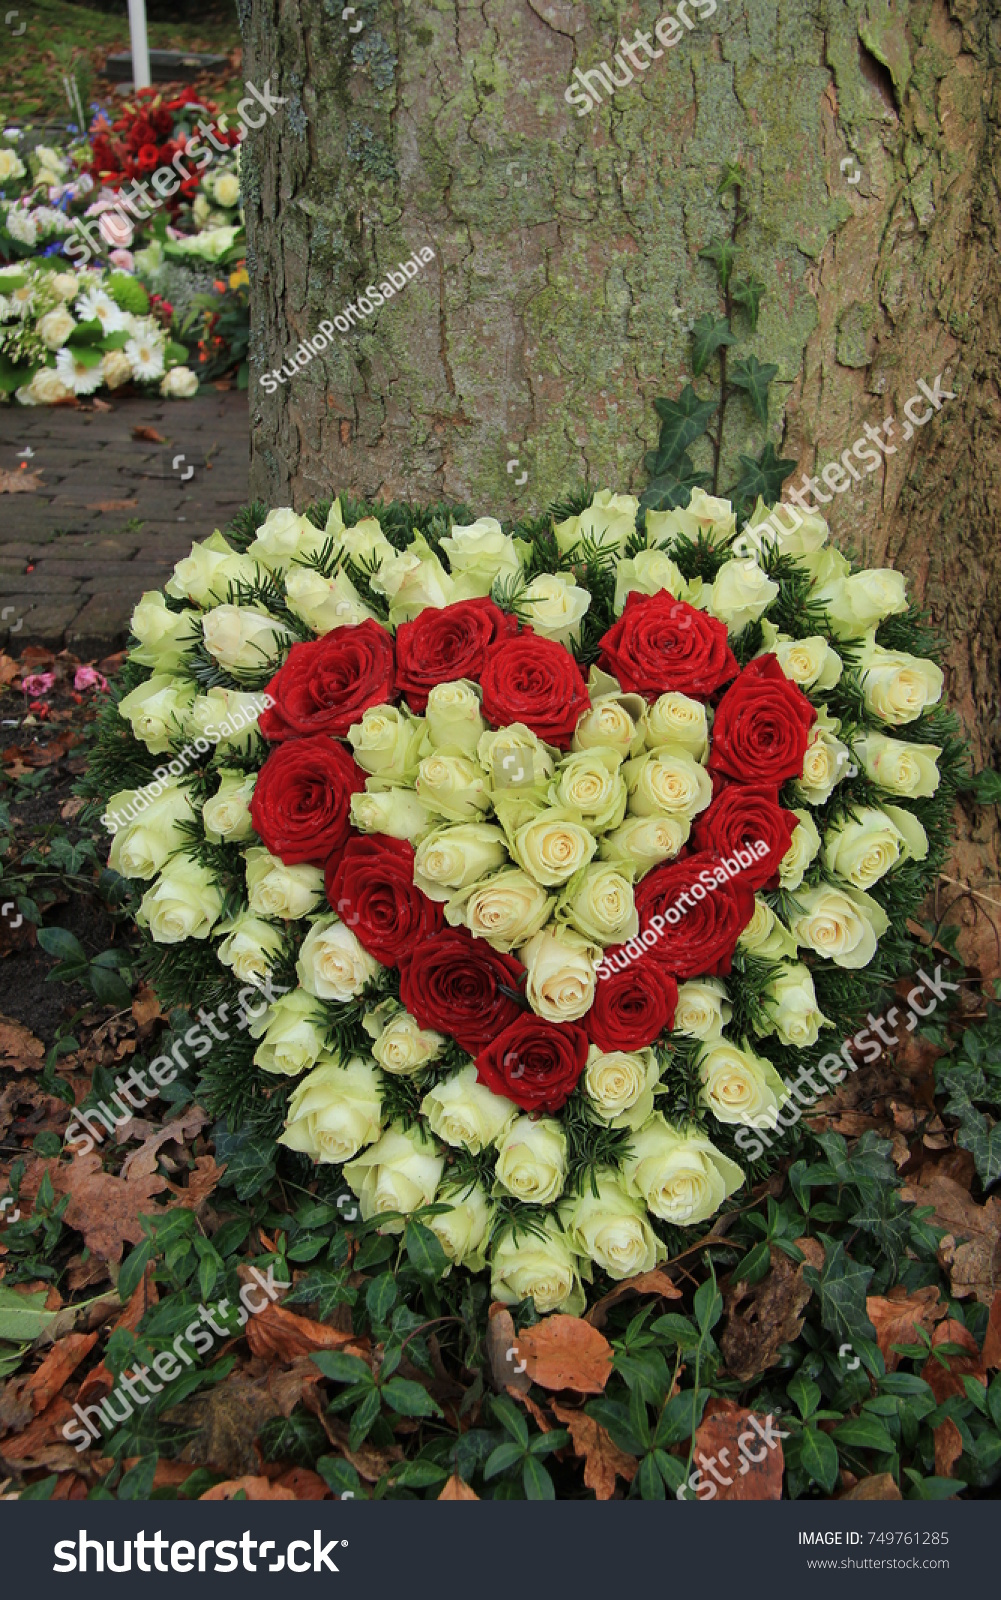 Red white heart shaped sympathy flowers stock photo royalty free red and white heart shaped sympathy flowers or funeral flowers near a tree izmirmasajfo Image collections